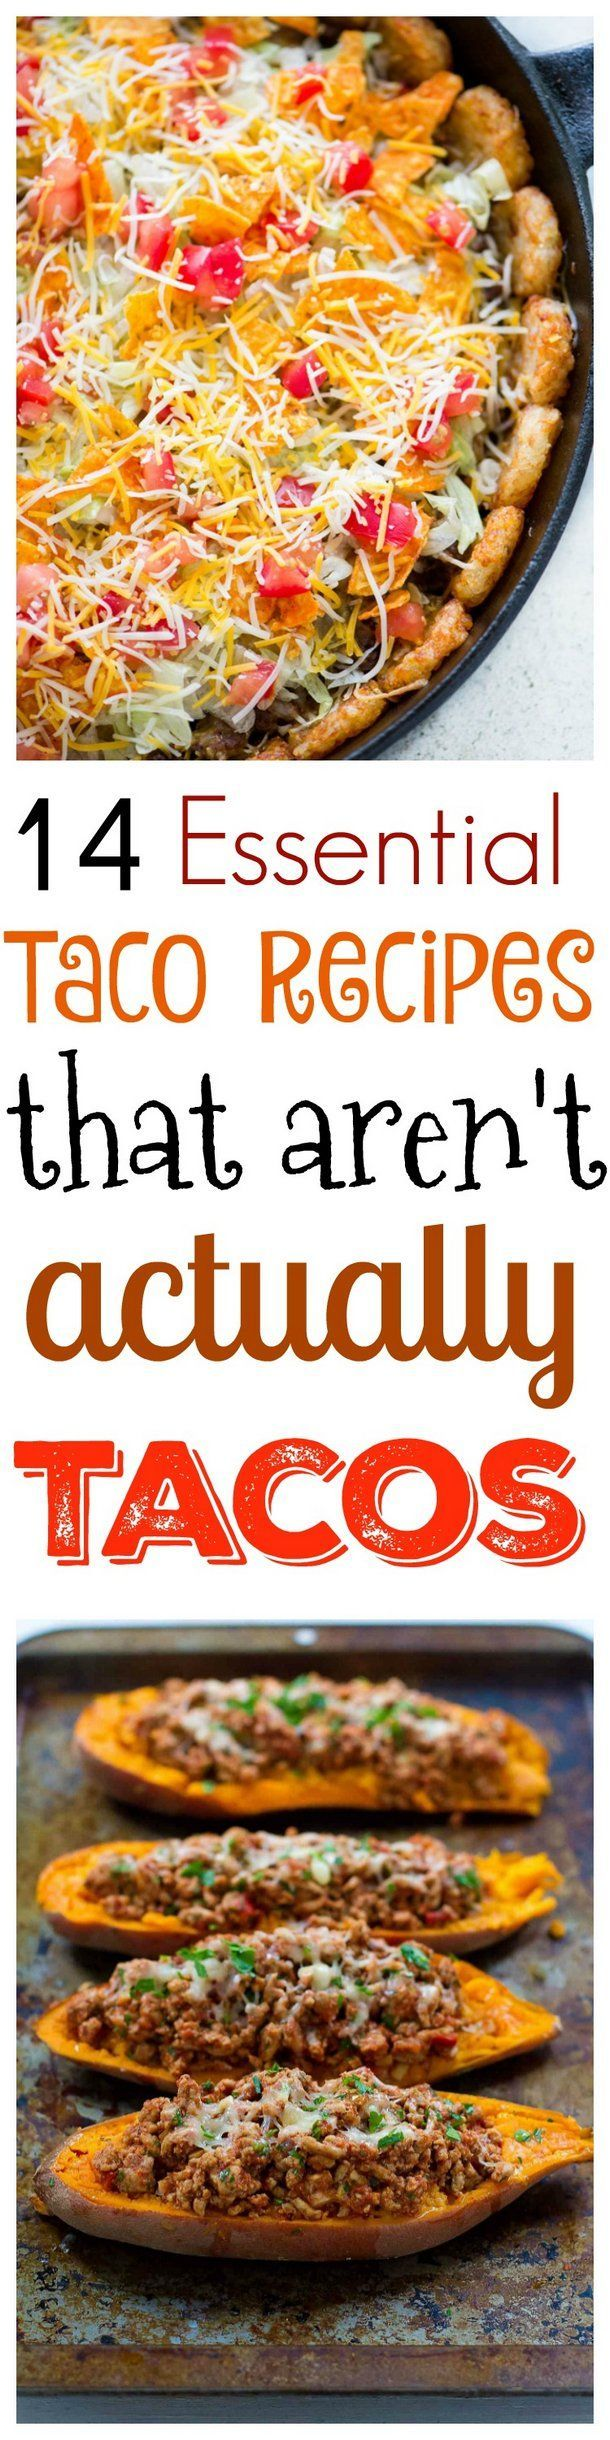 14 Best Essential Taco Recipes that Aren't Actually Tacos.